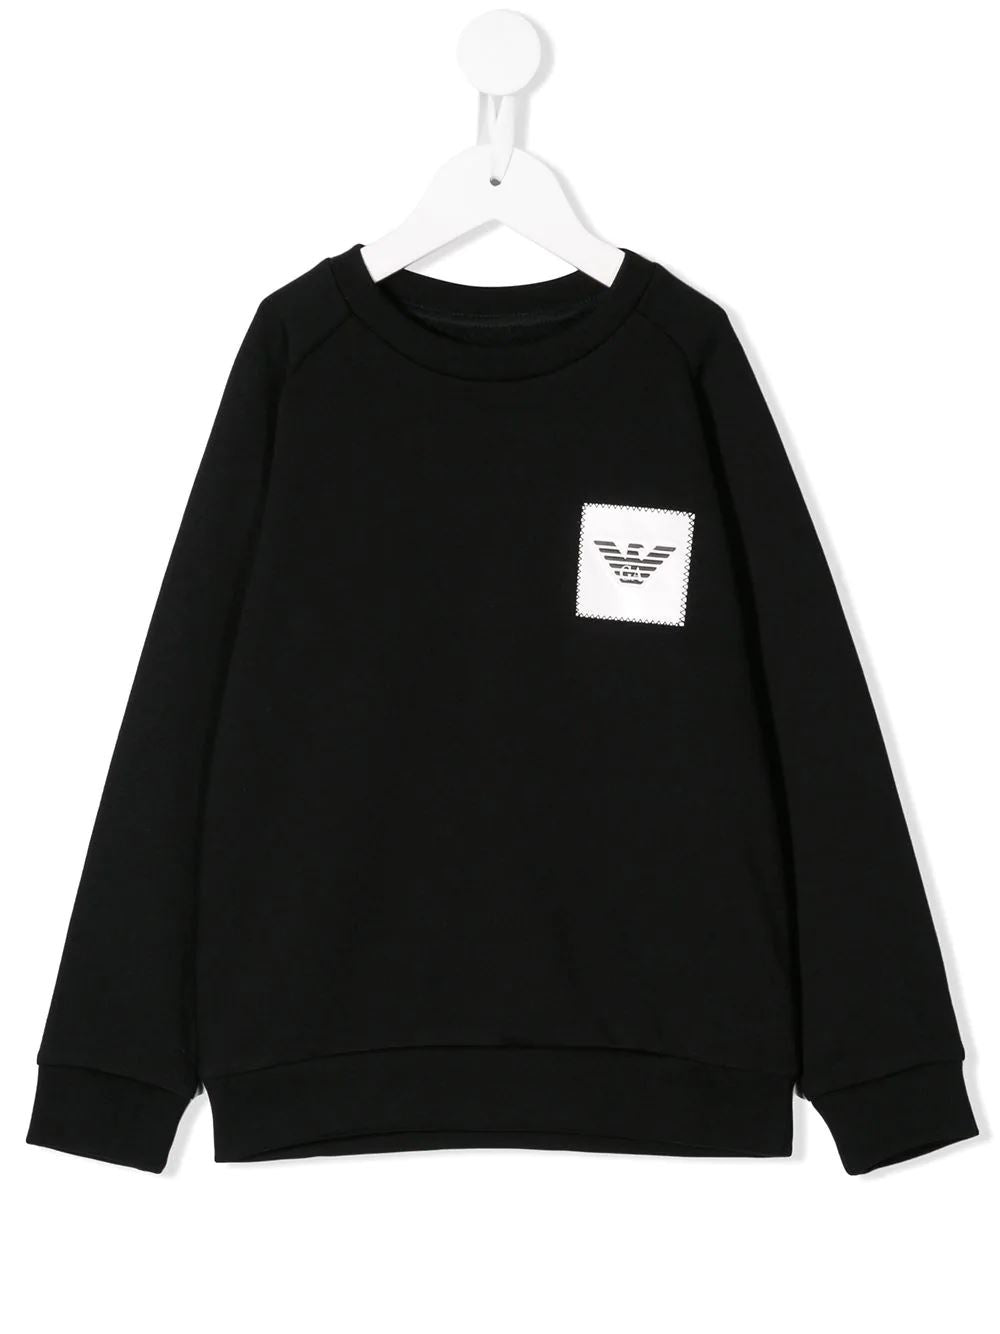 Emporio Armani Kids Logo Patch Sweatshirt - Maison De Fashion